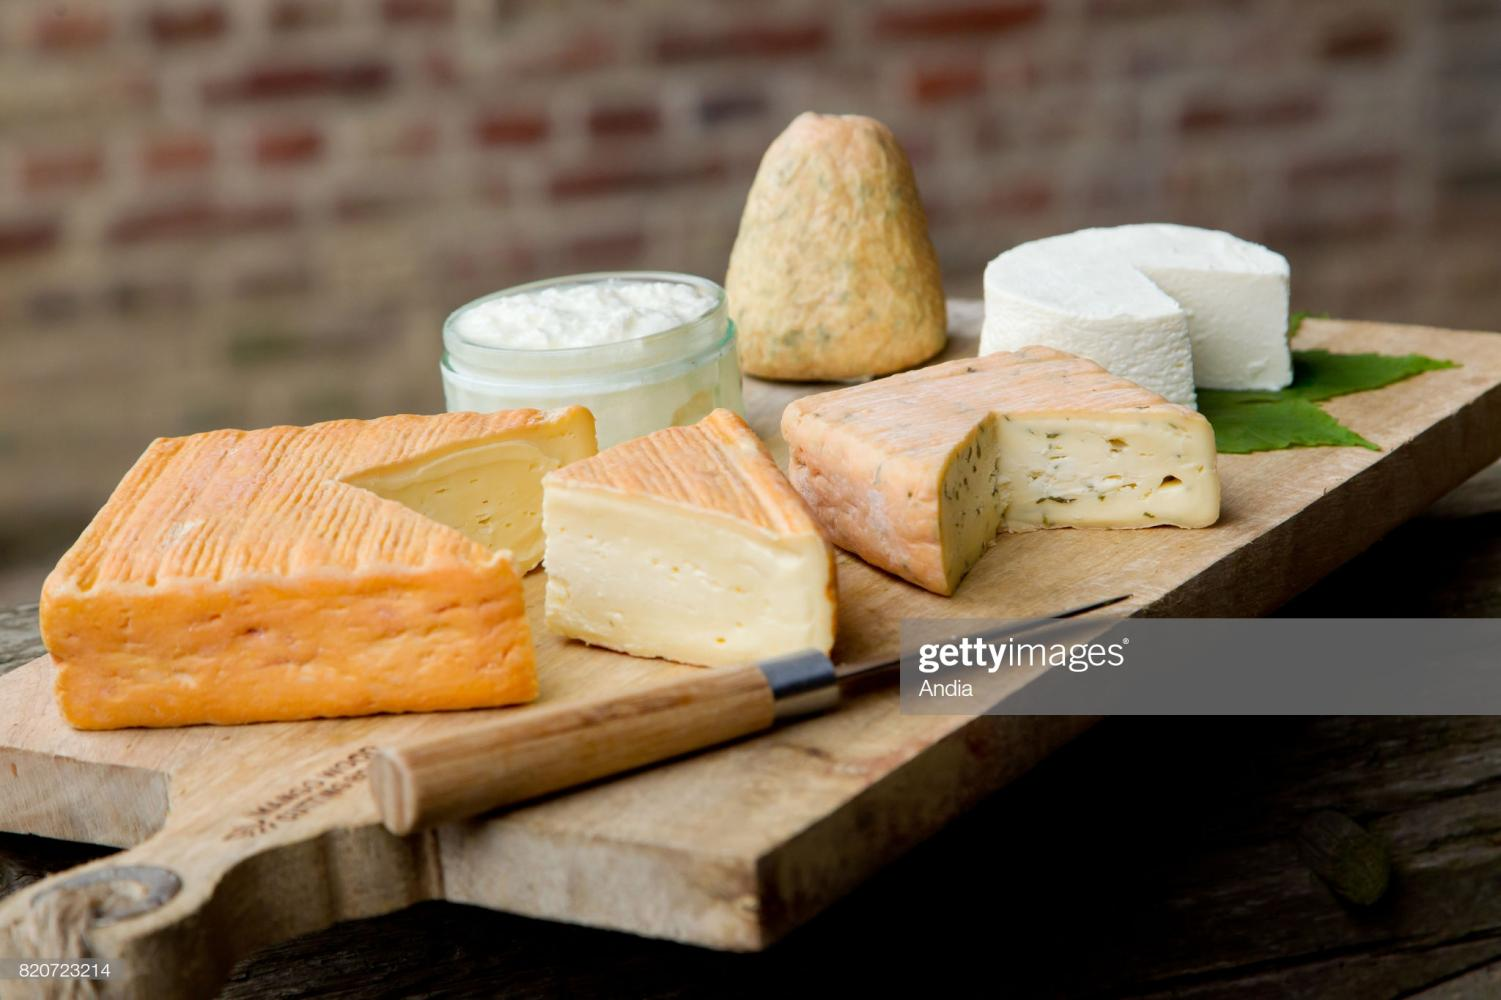 Cheese from northern France: cheese platter with Maroilles and Boulette du Nord.